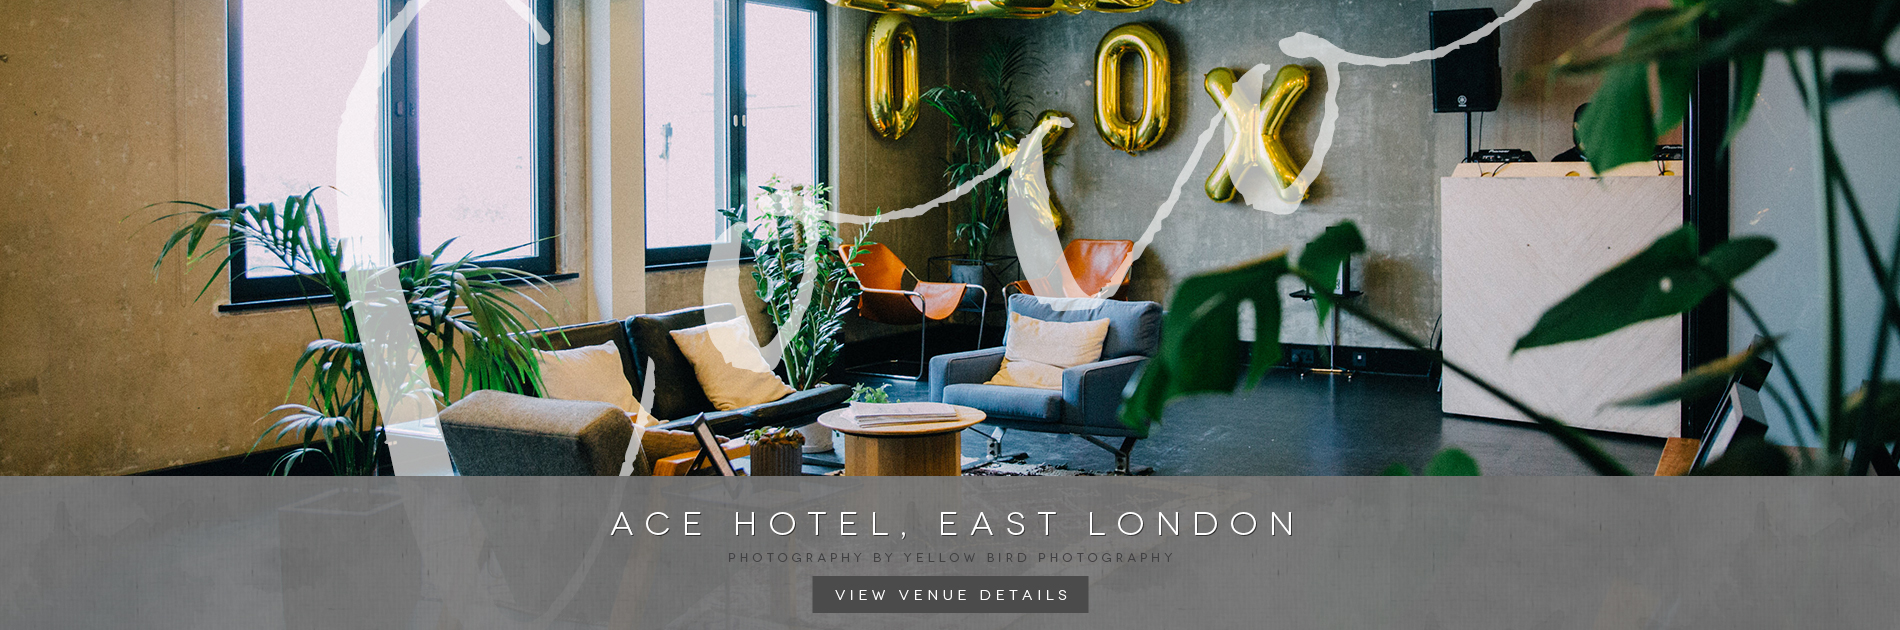 Coco wedding venues slideshow - east-london-industrial-wedding-venues-ace-hotel-january-2016